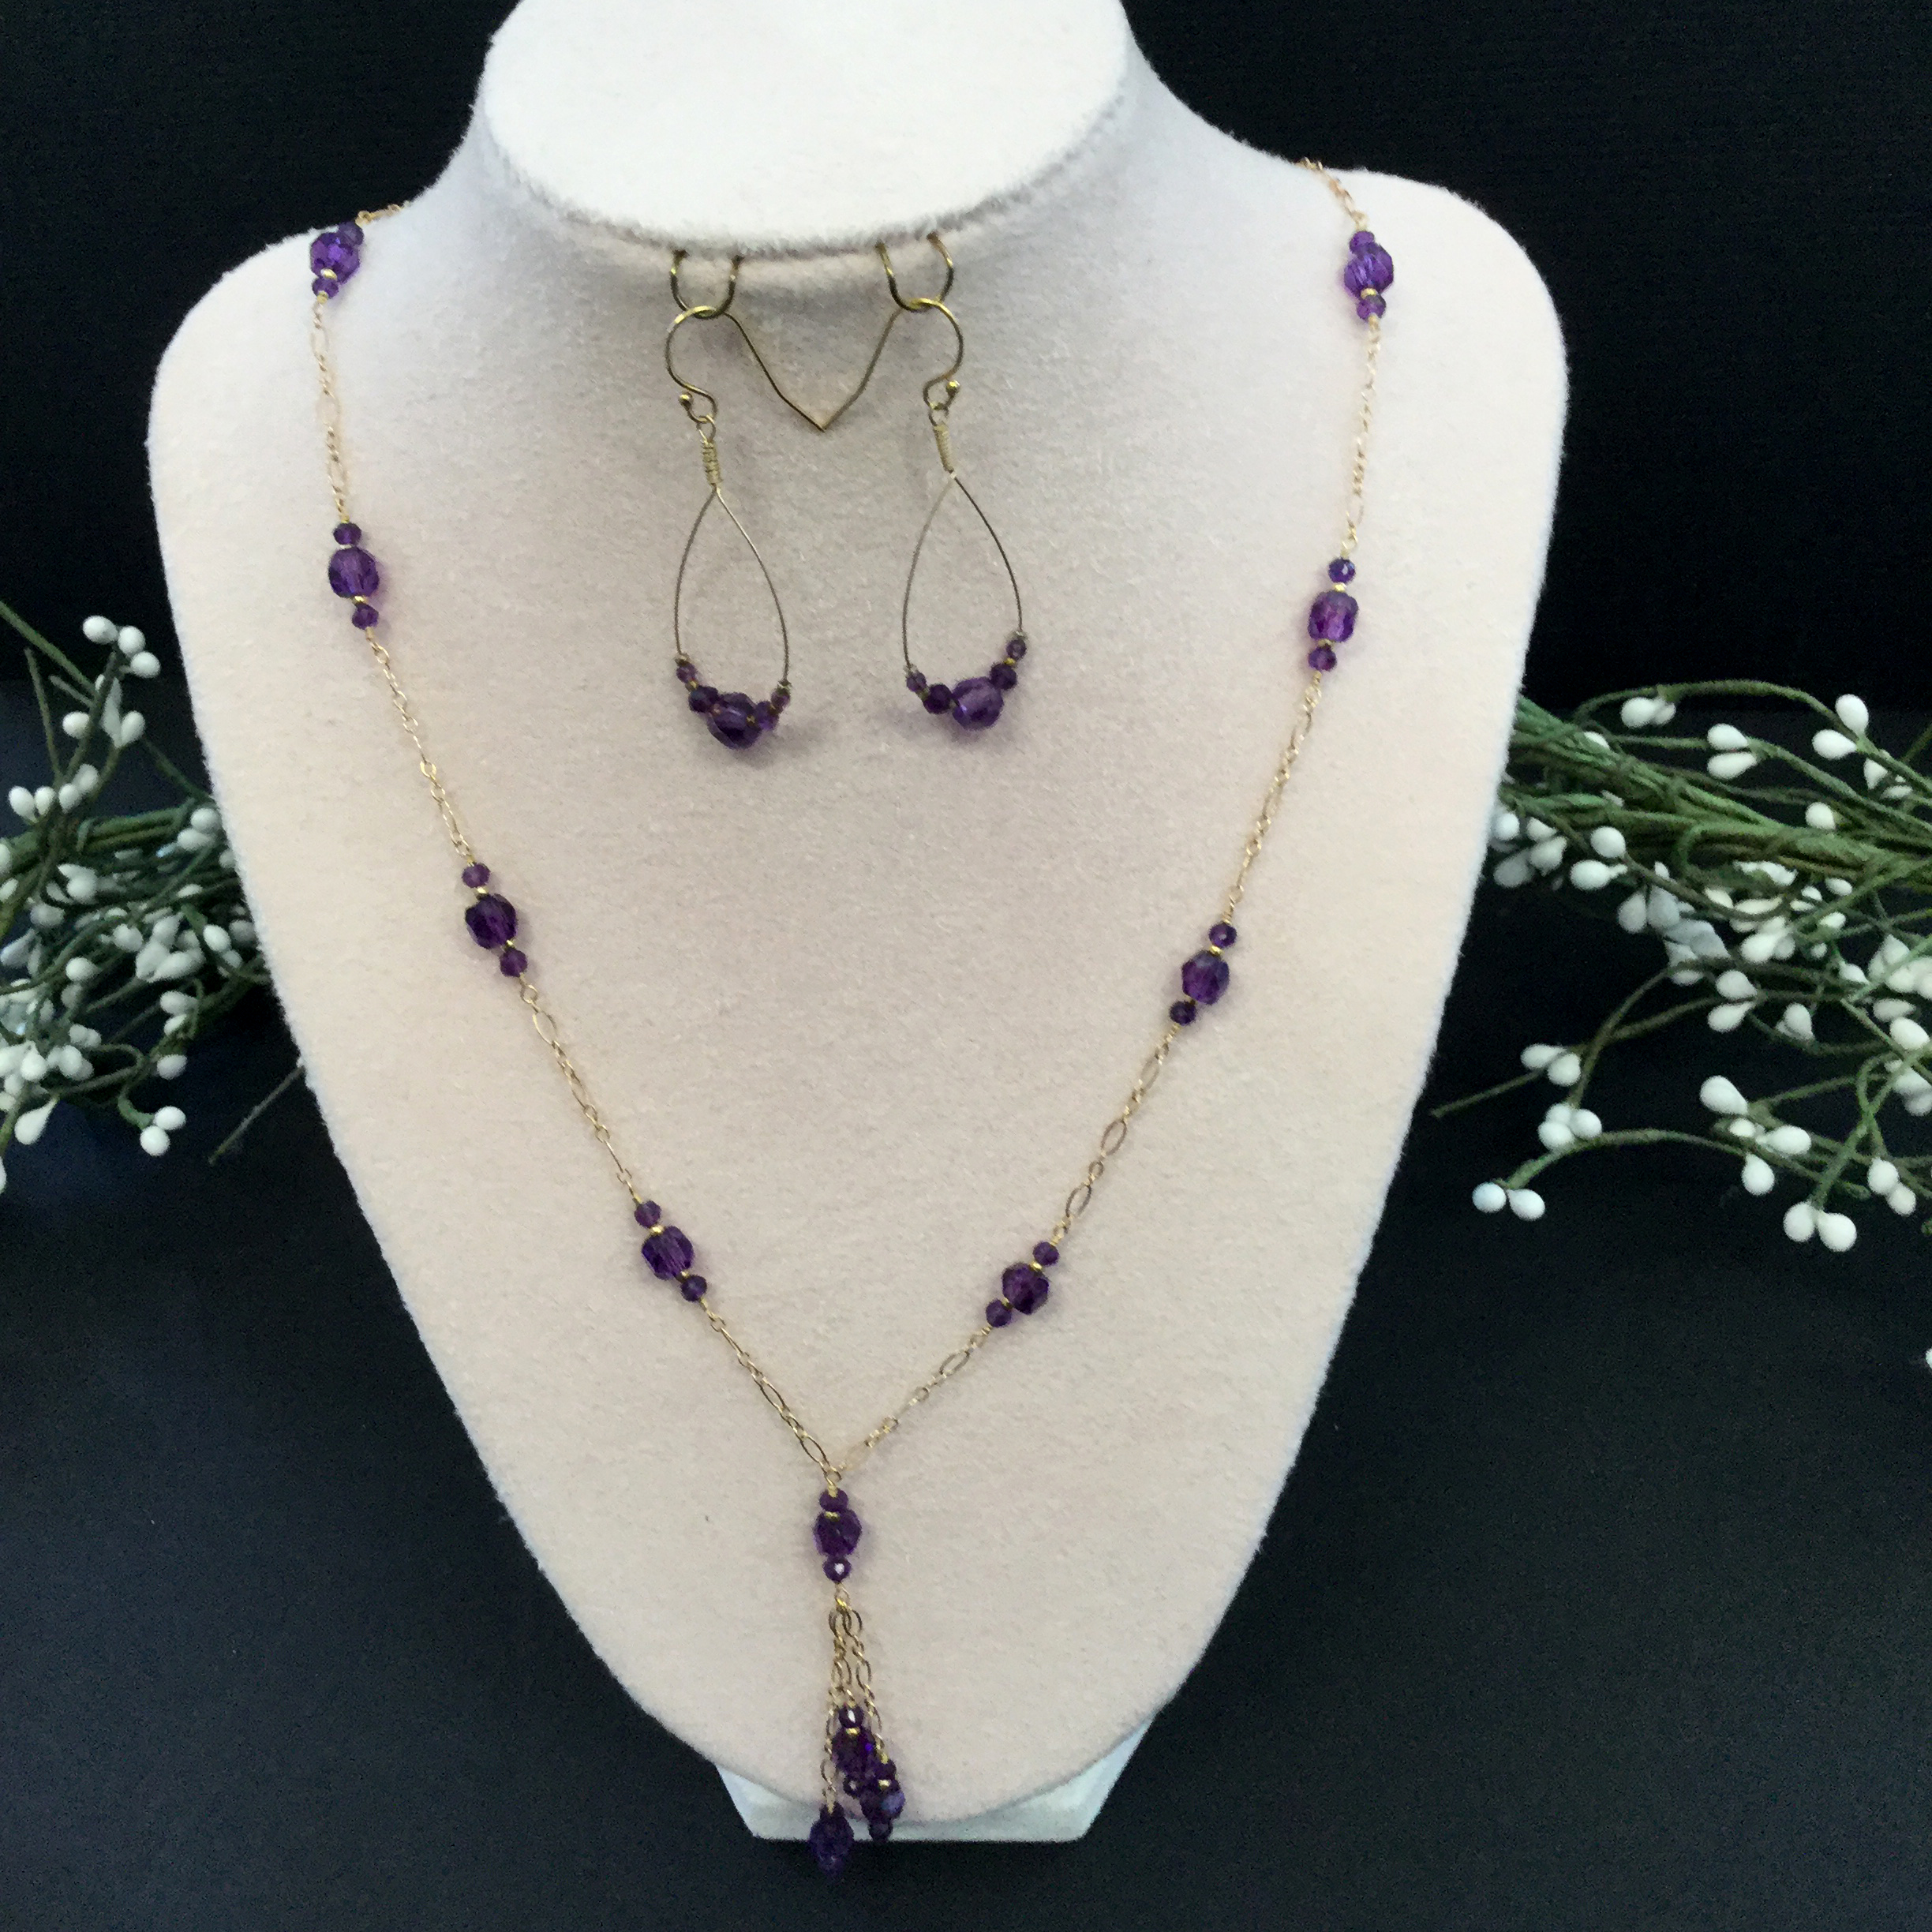 37-amethyst/gold fill set (22 in necklace and earrings)